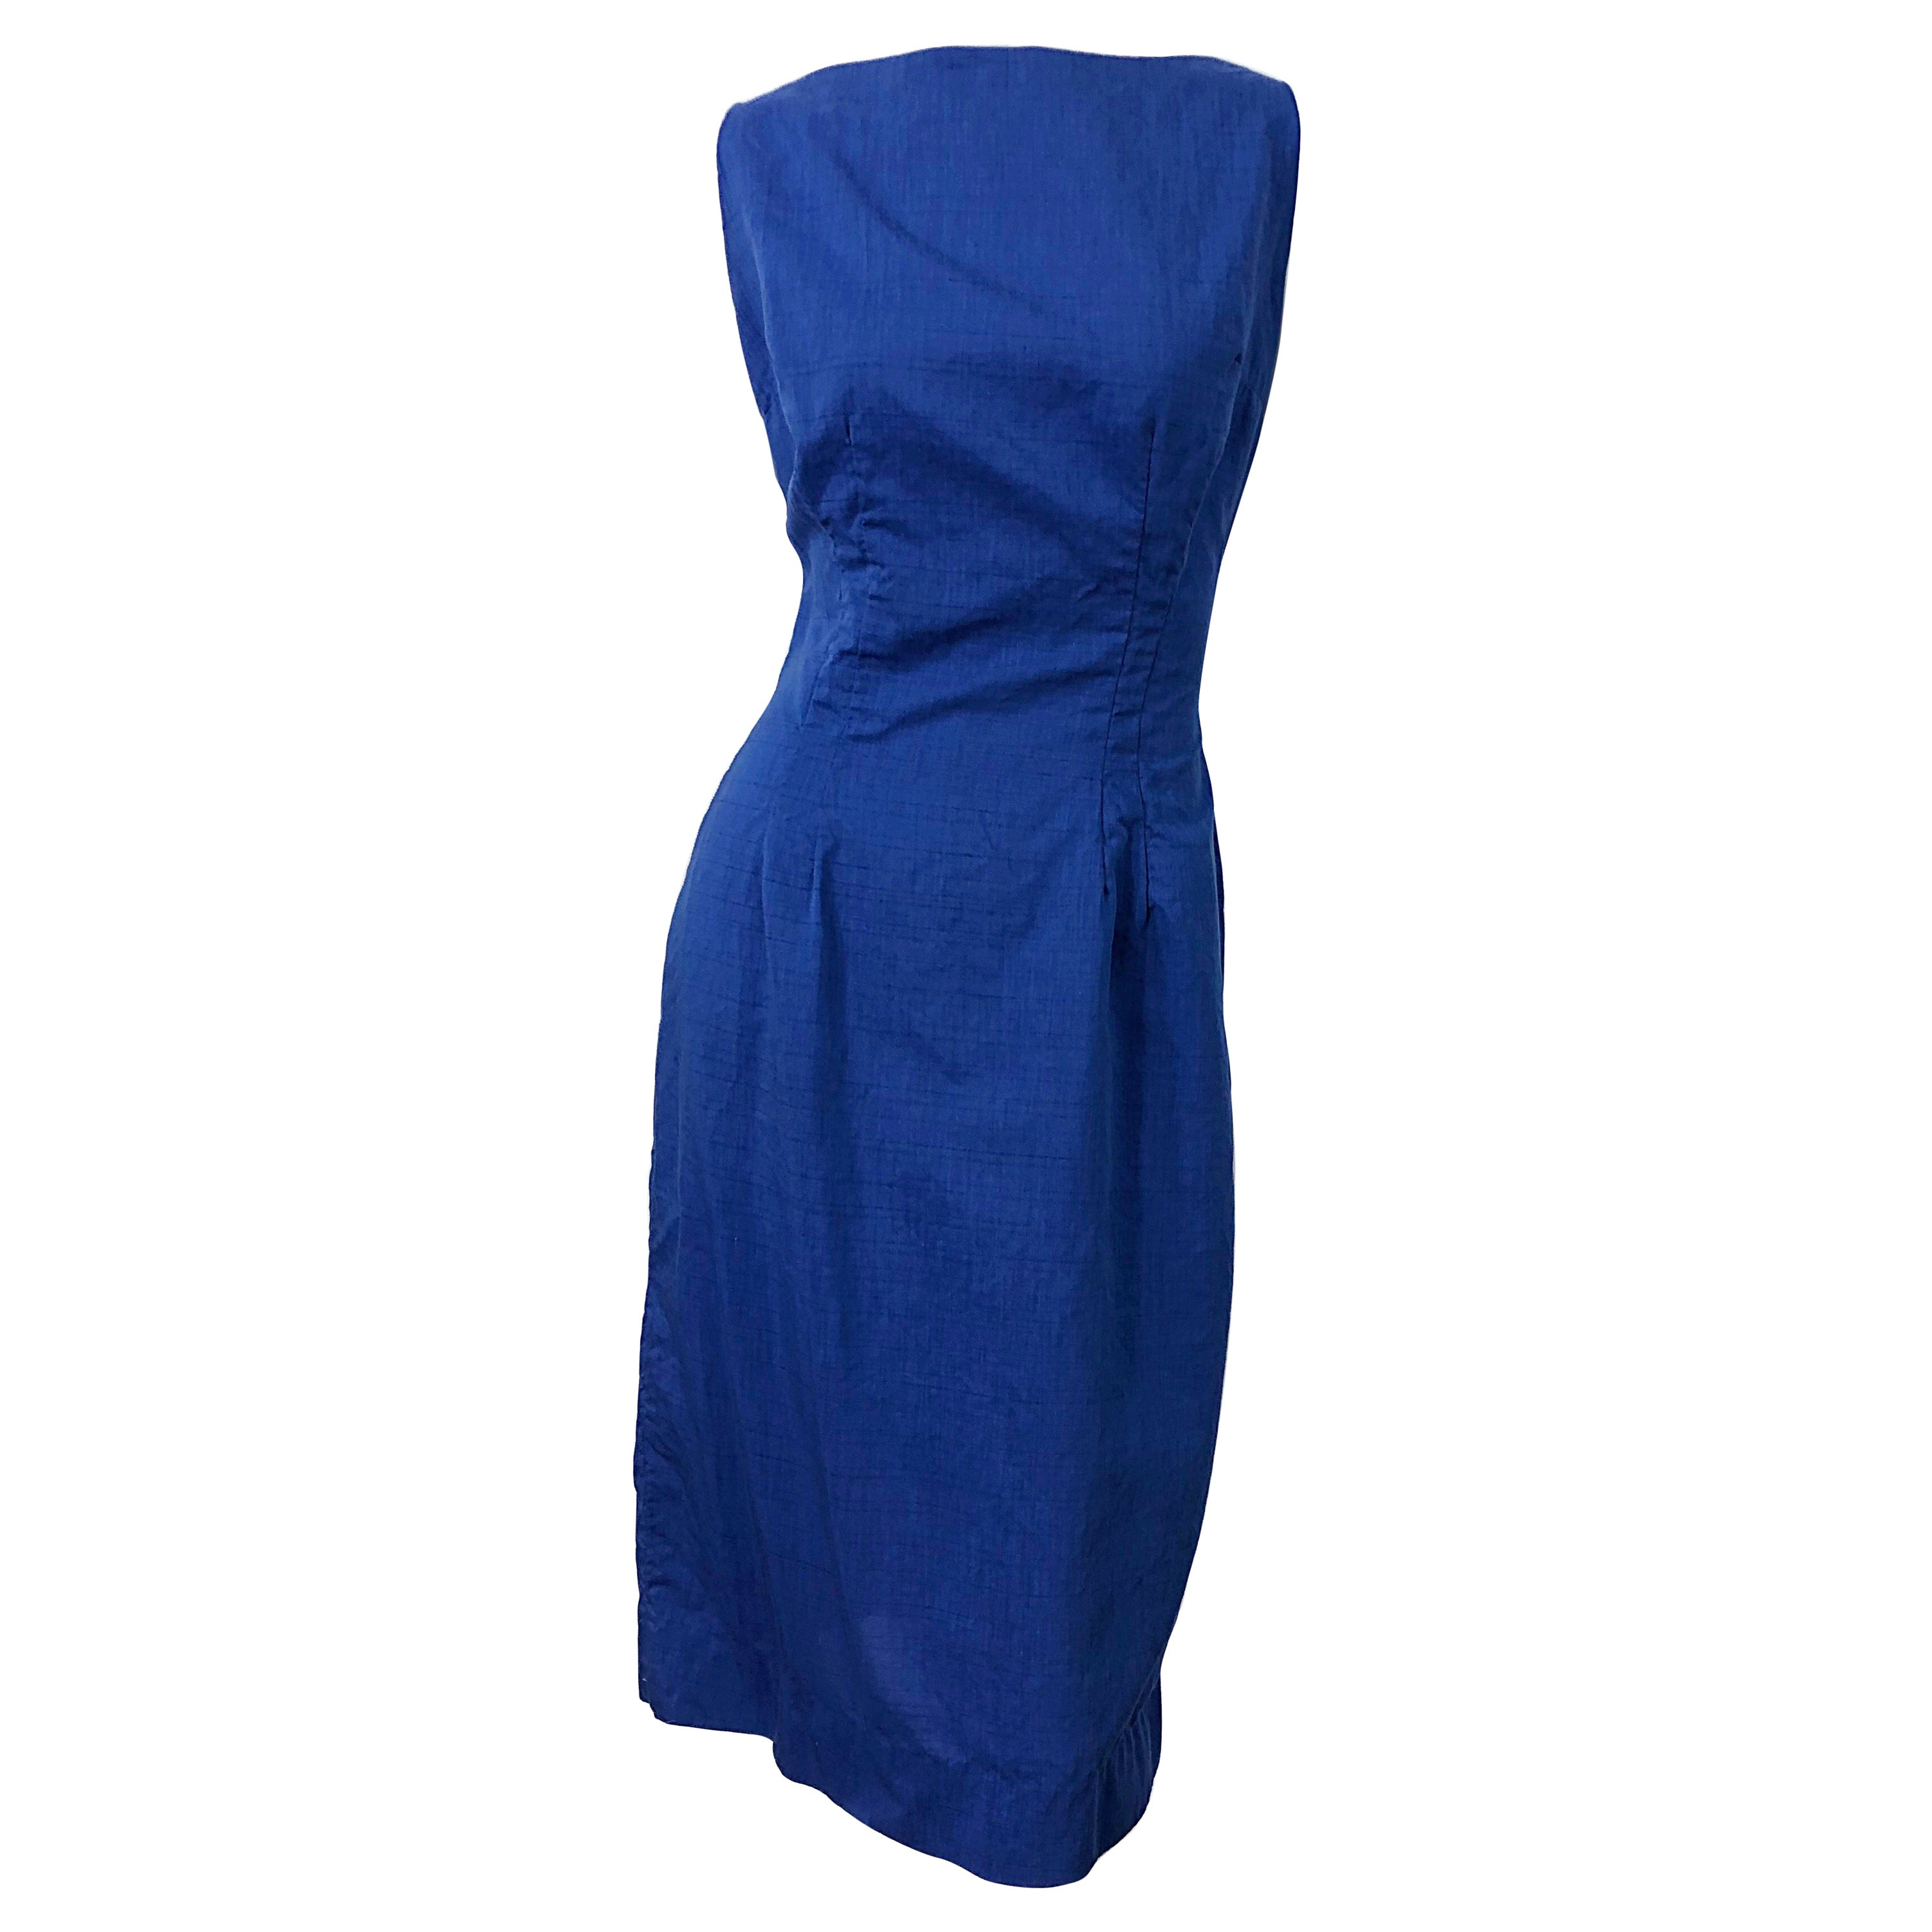 Chic 1950s Cobalt Blue Cotton High Neck Vintage 50s Sleeveless Wiggle Dress